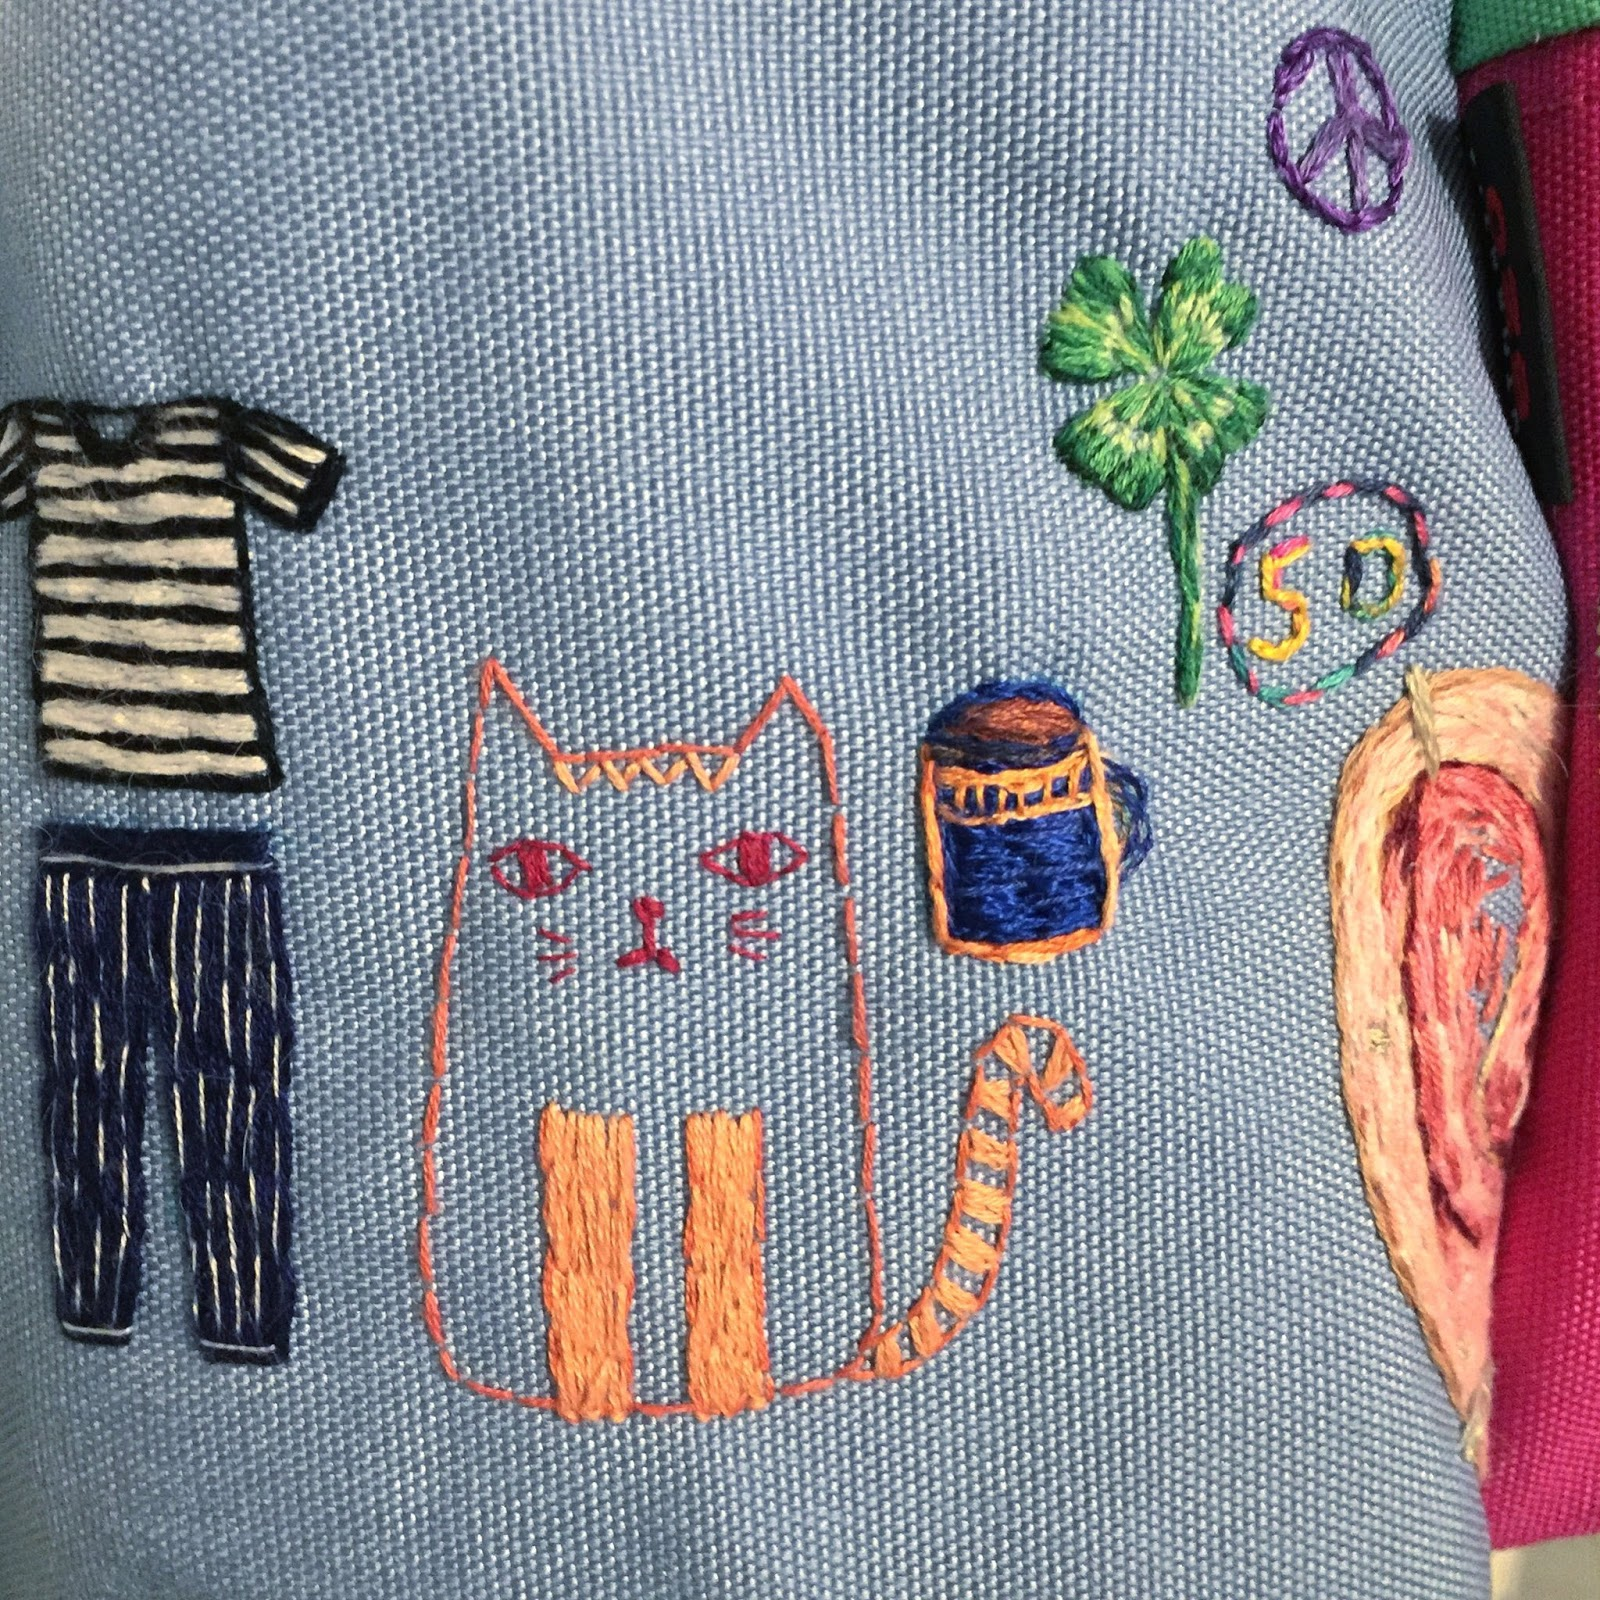 The Old Bag Project by Sparkly Mouse, a Feeling Stitchy feature by floresita